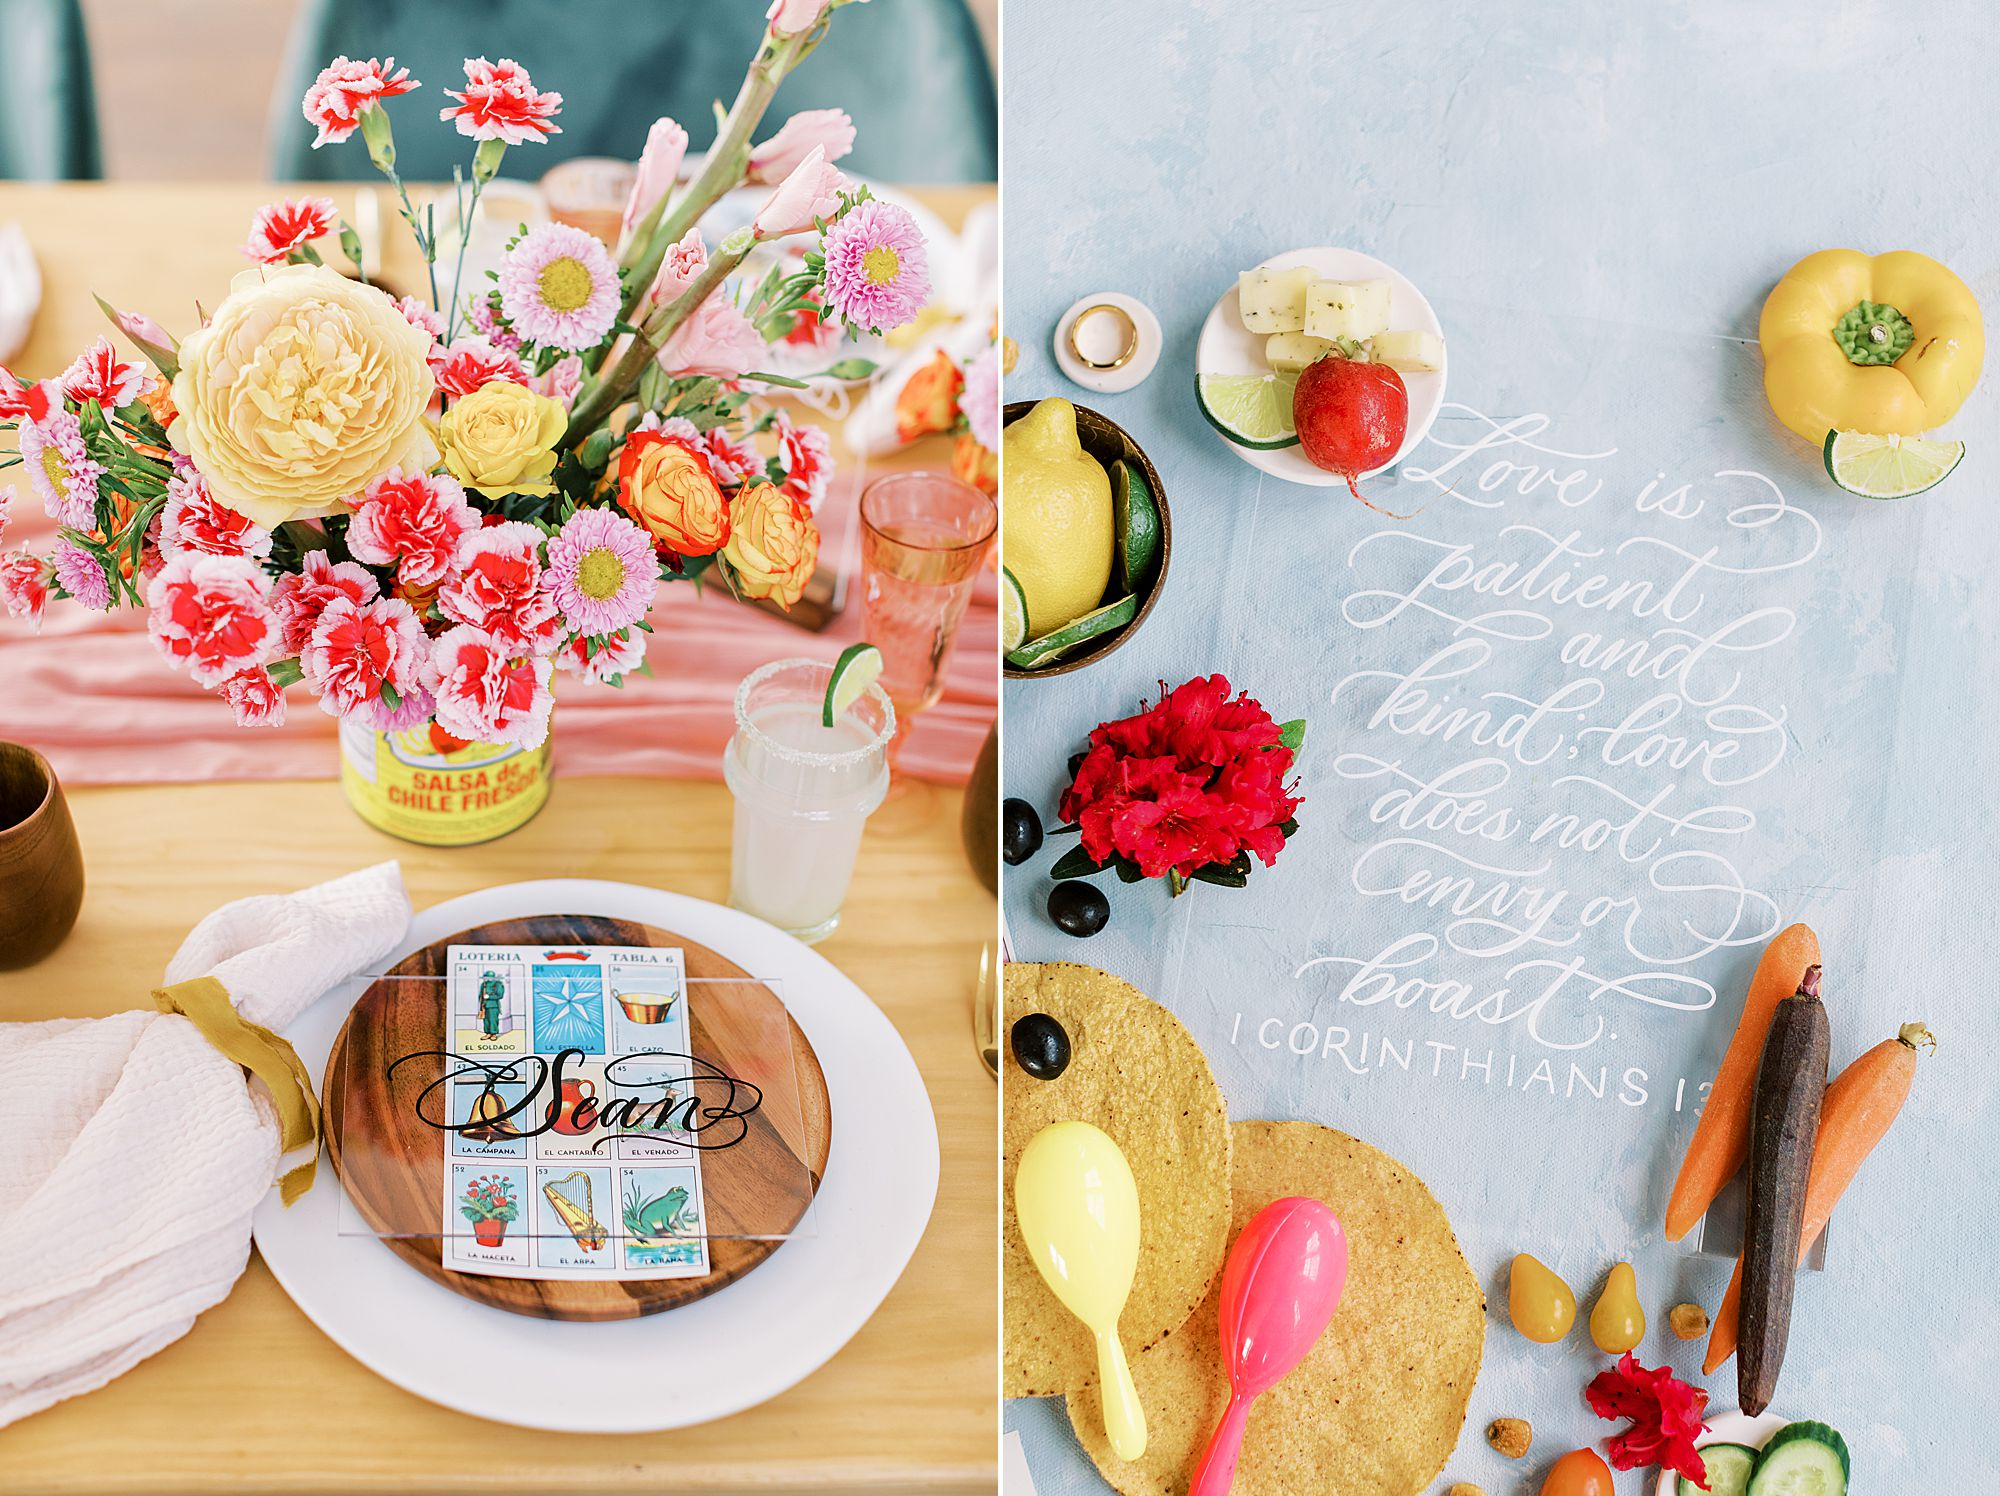 Cinco De Mayo Inspiration for Your FIesta - Party Crush Studio and Ashley Baumgartner_0022.jpg